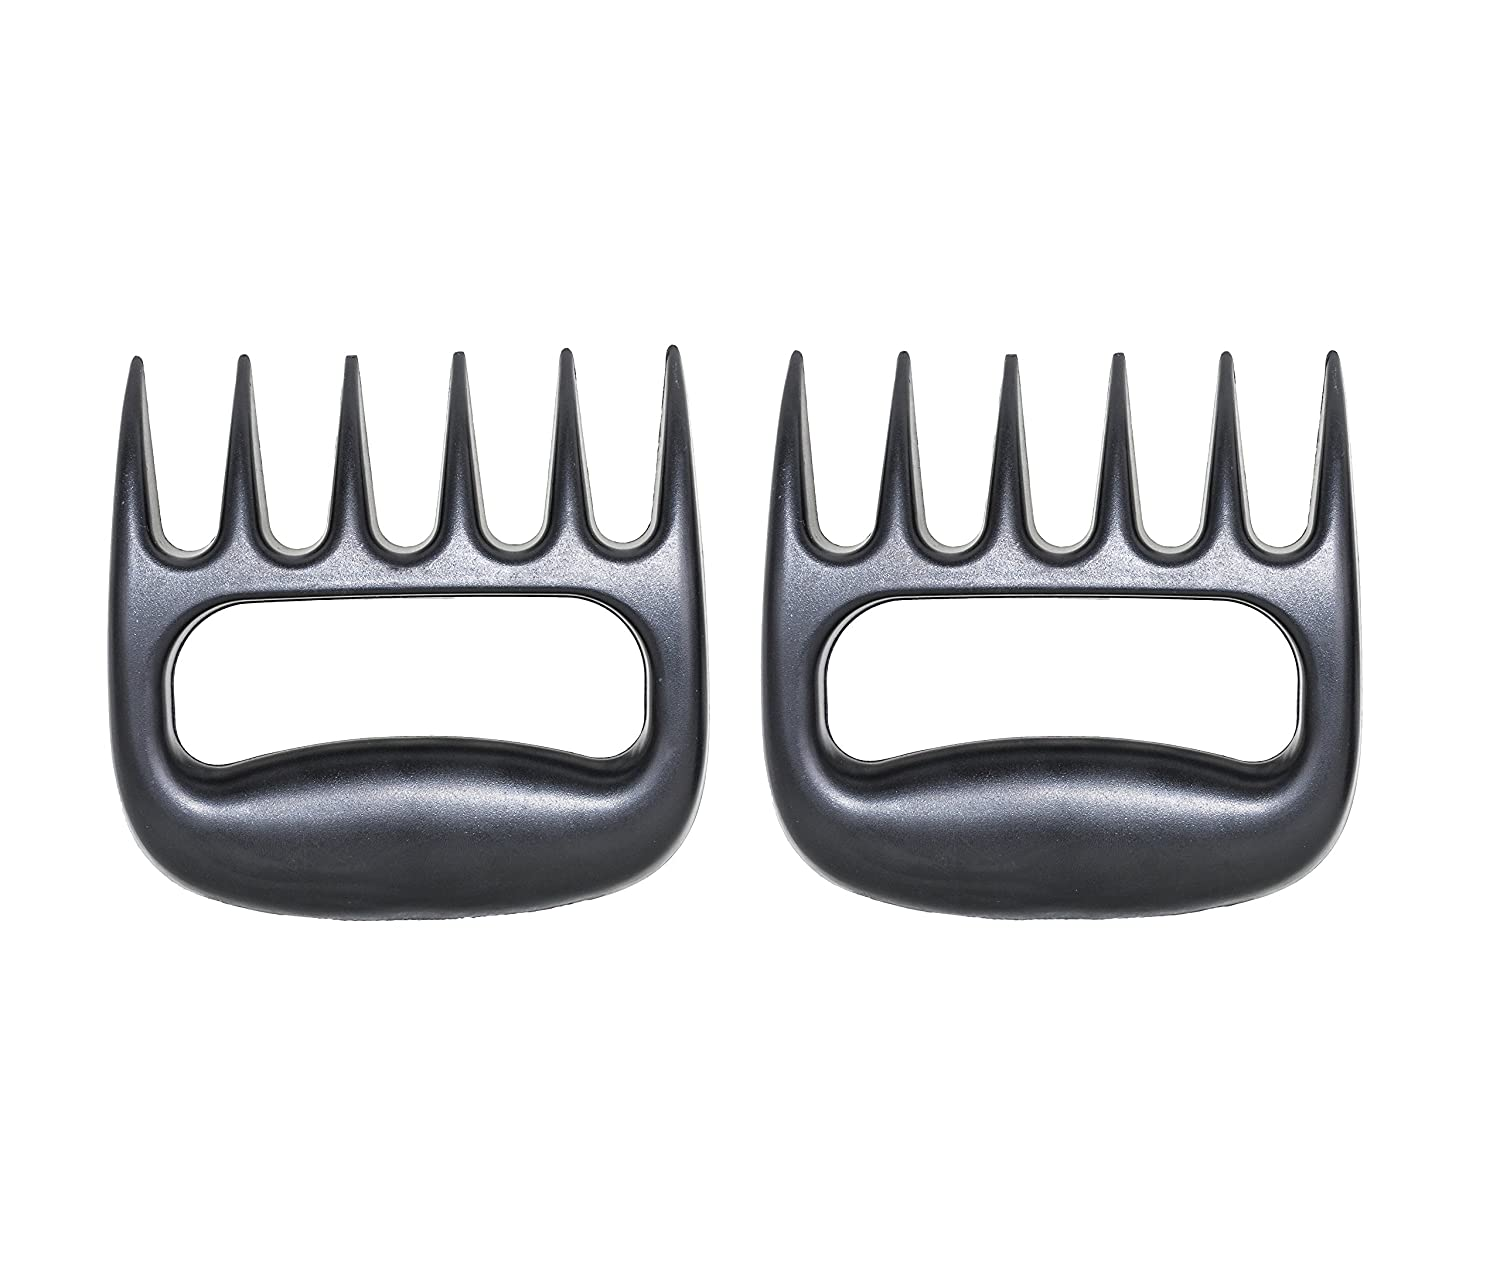 The Original Magicing Shredder Claws - Easily Lift, Handle, Shred, and Cut Meats - Essential for BBQ Pros - Ultra-Sharp Blades and Heat Resistant Nylon S-071